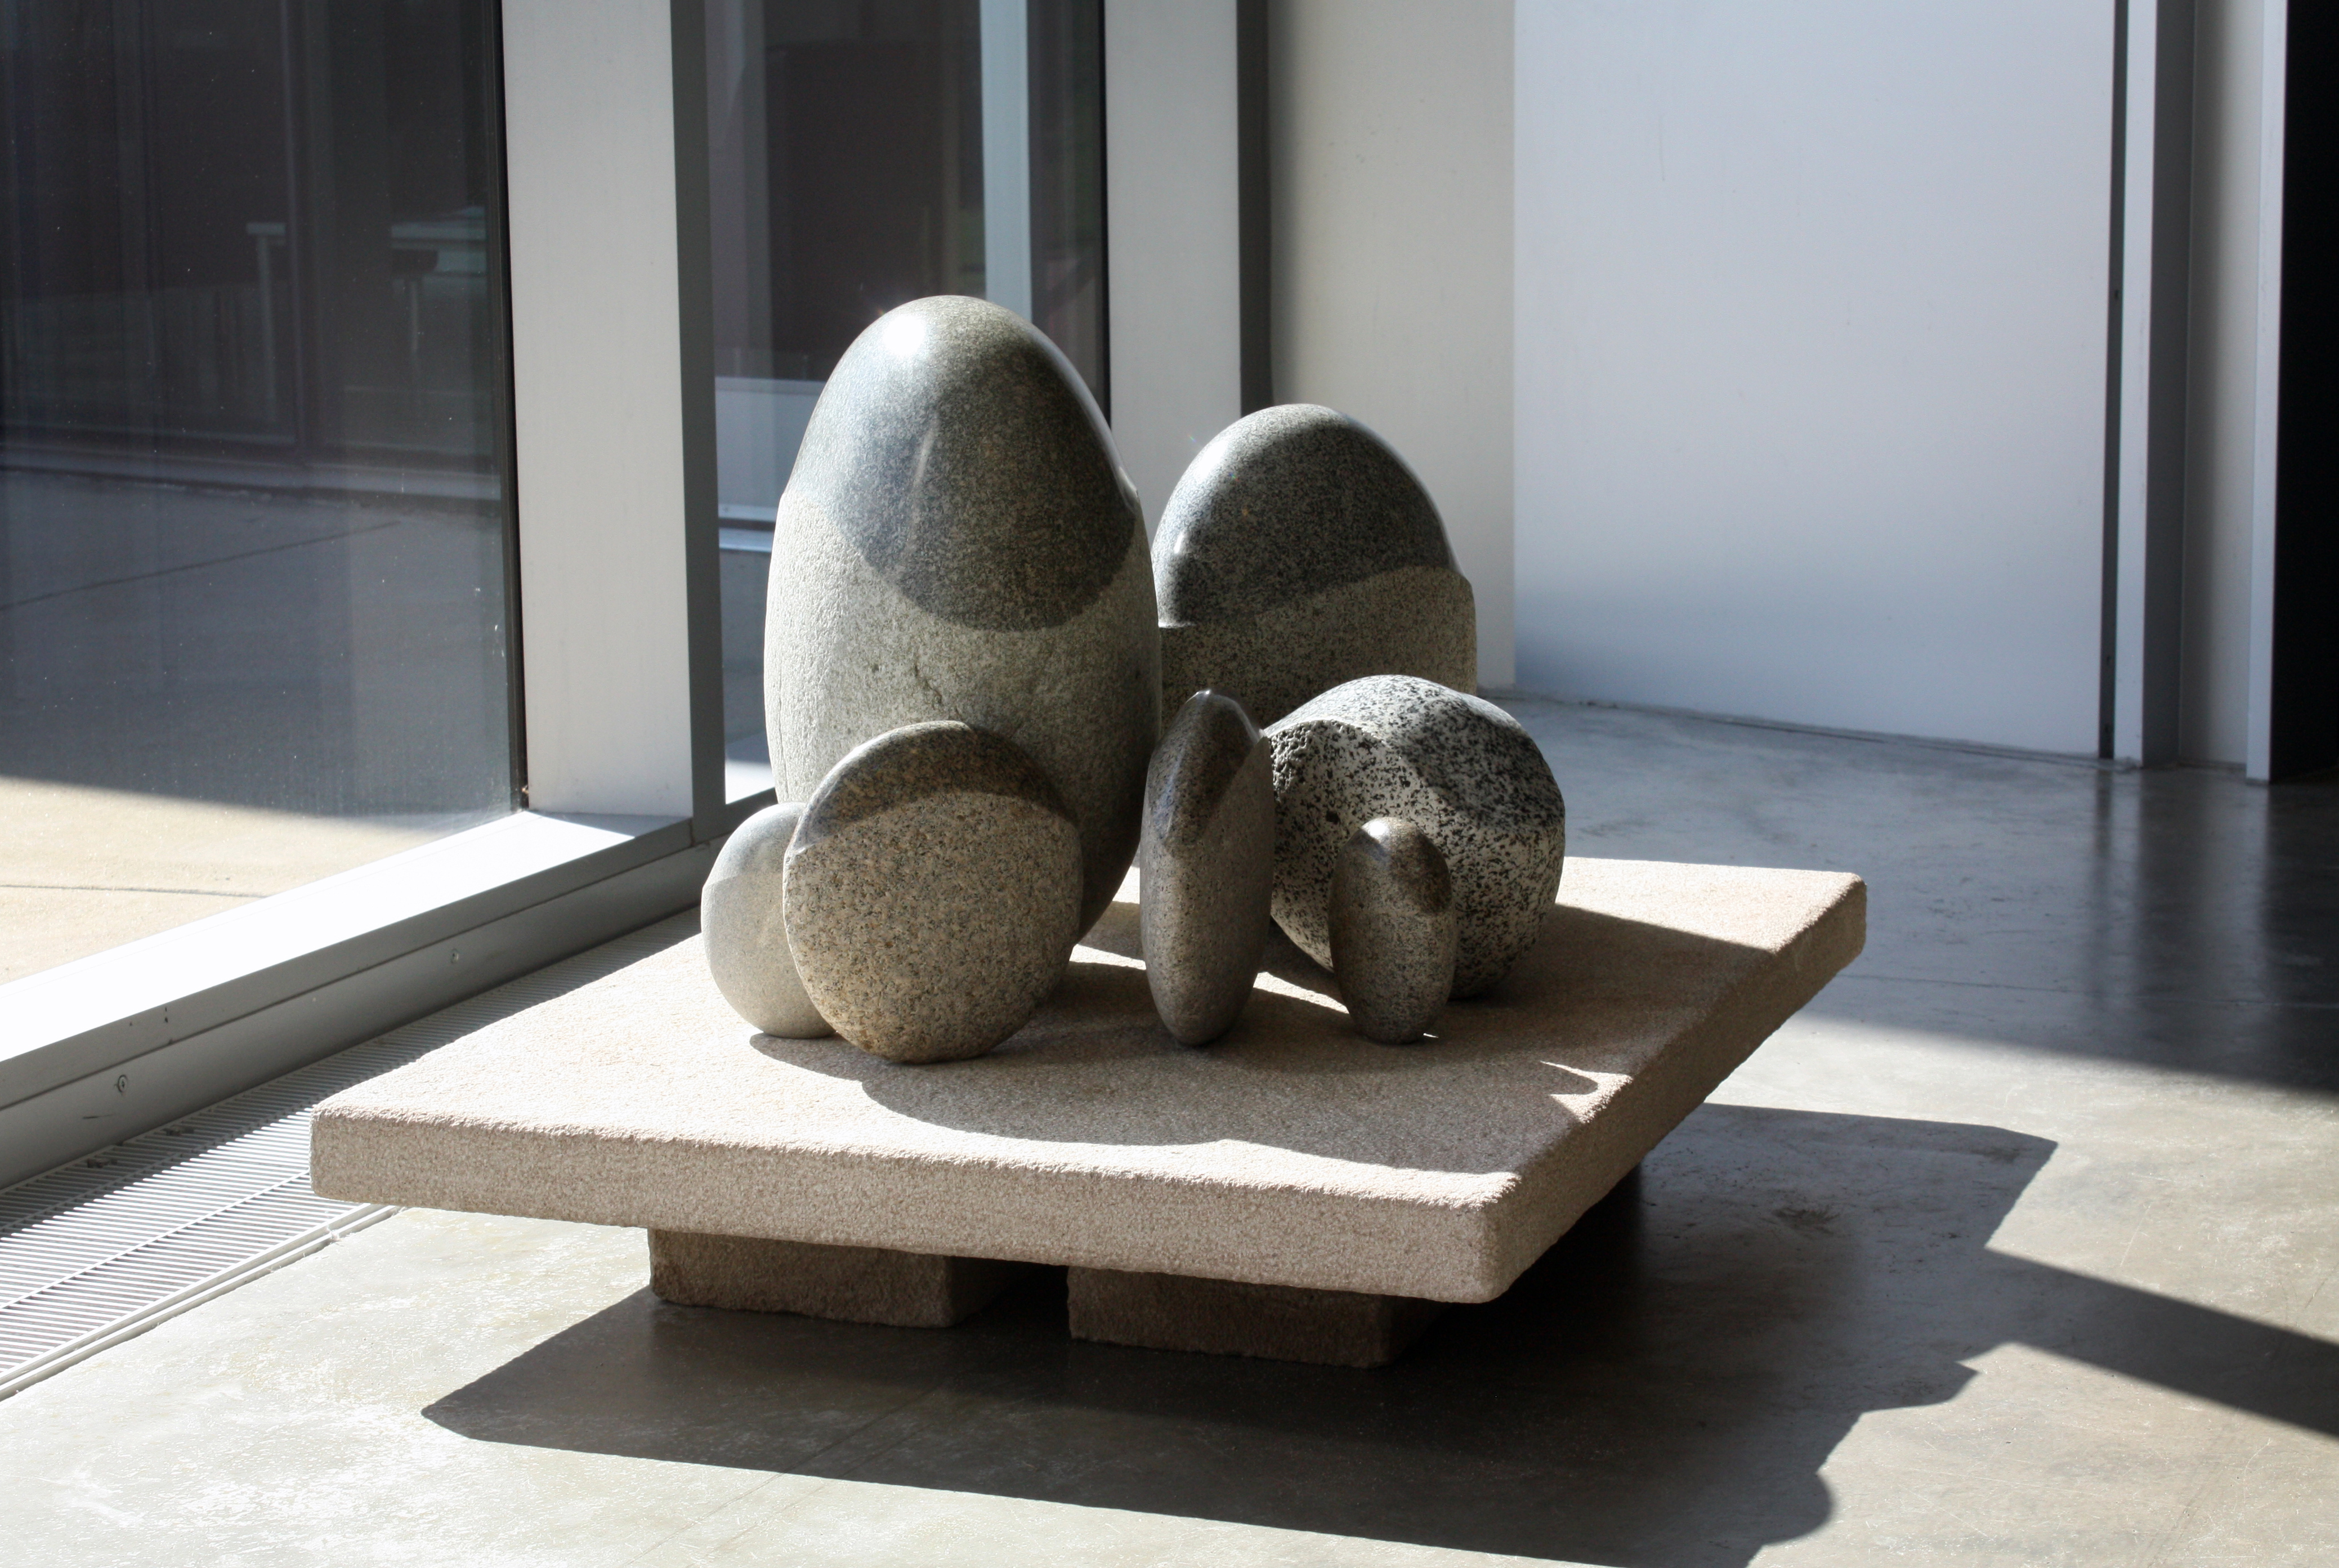 'Tribe of the River and Hills'  - 2012 - 27 x 37 x 24 inches - Skykomish River Granites on Indiana Limestone